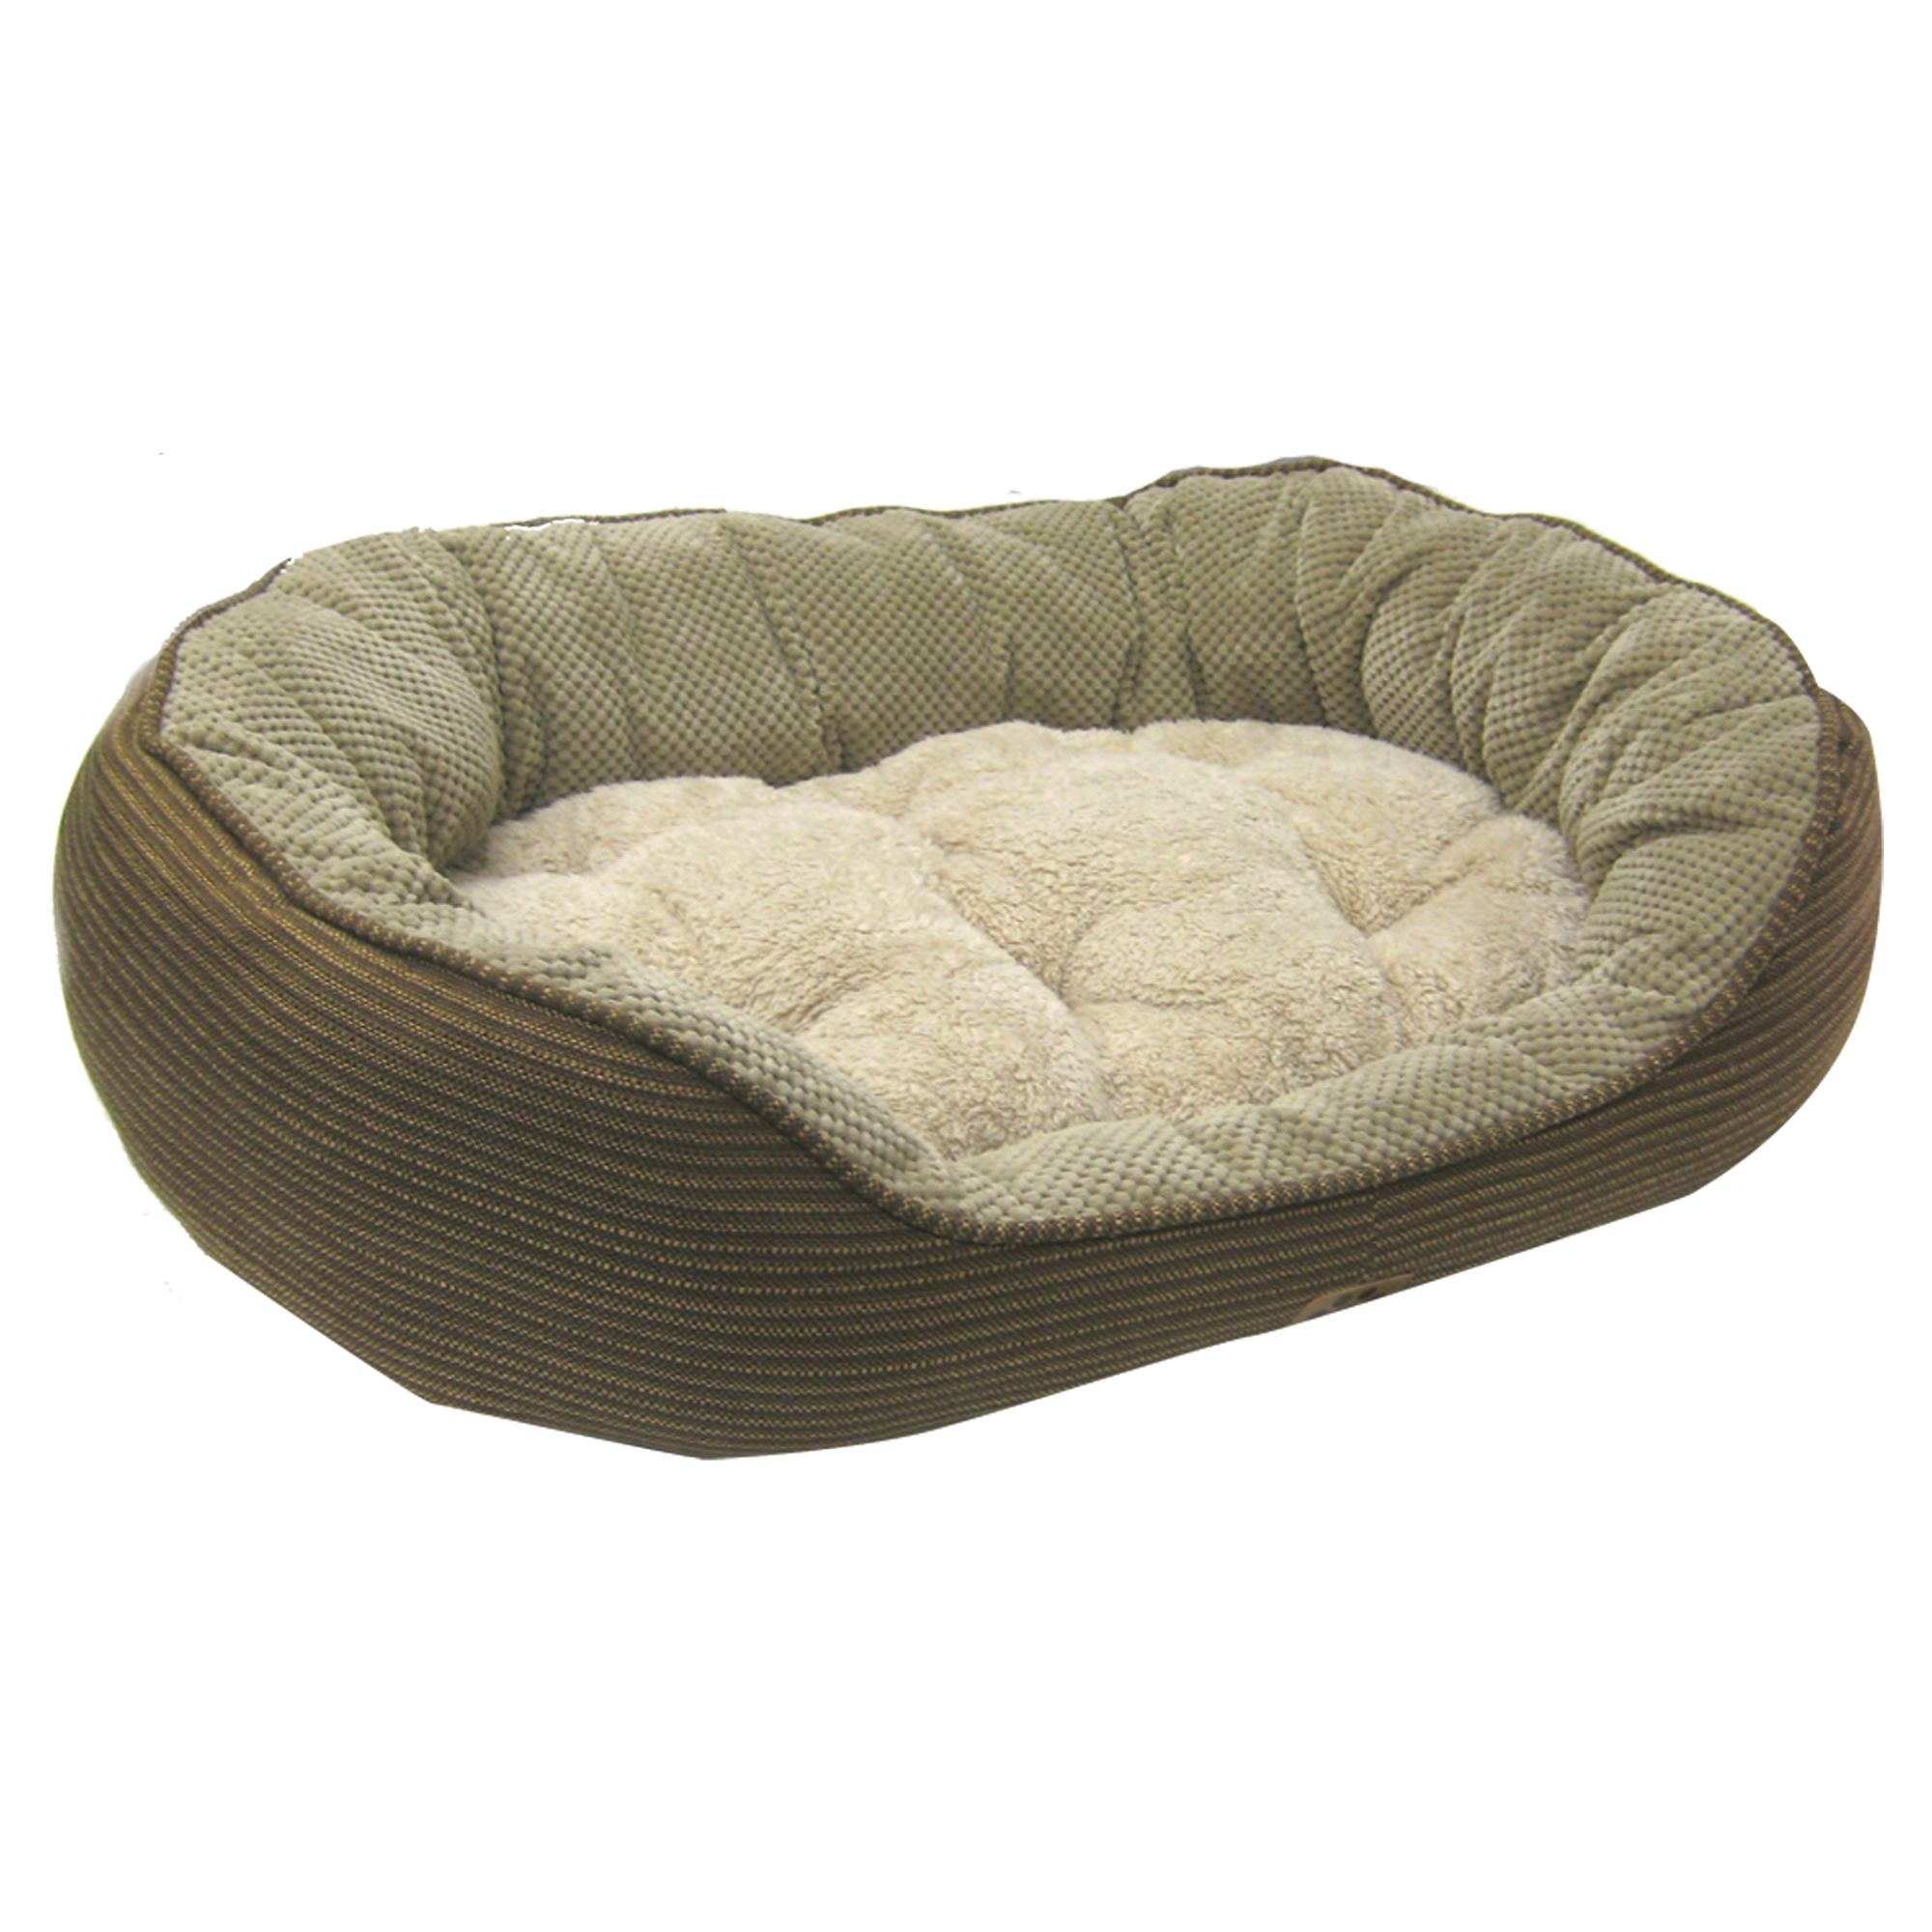 Precision Pet Daydreamer Pet Bed Size 21l X 19w X 9.5h Red